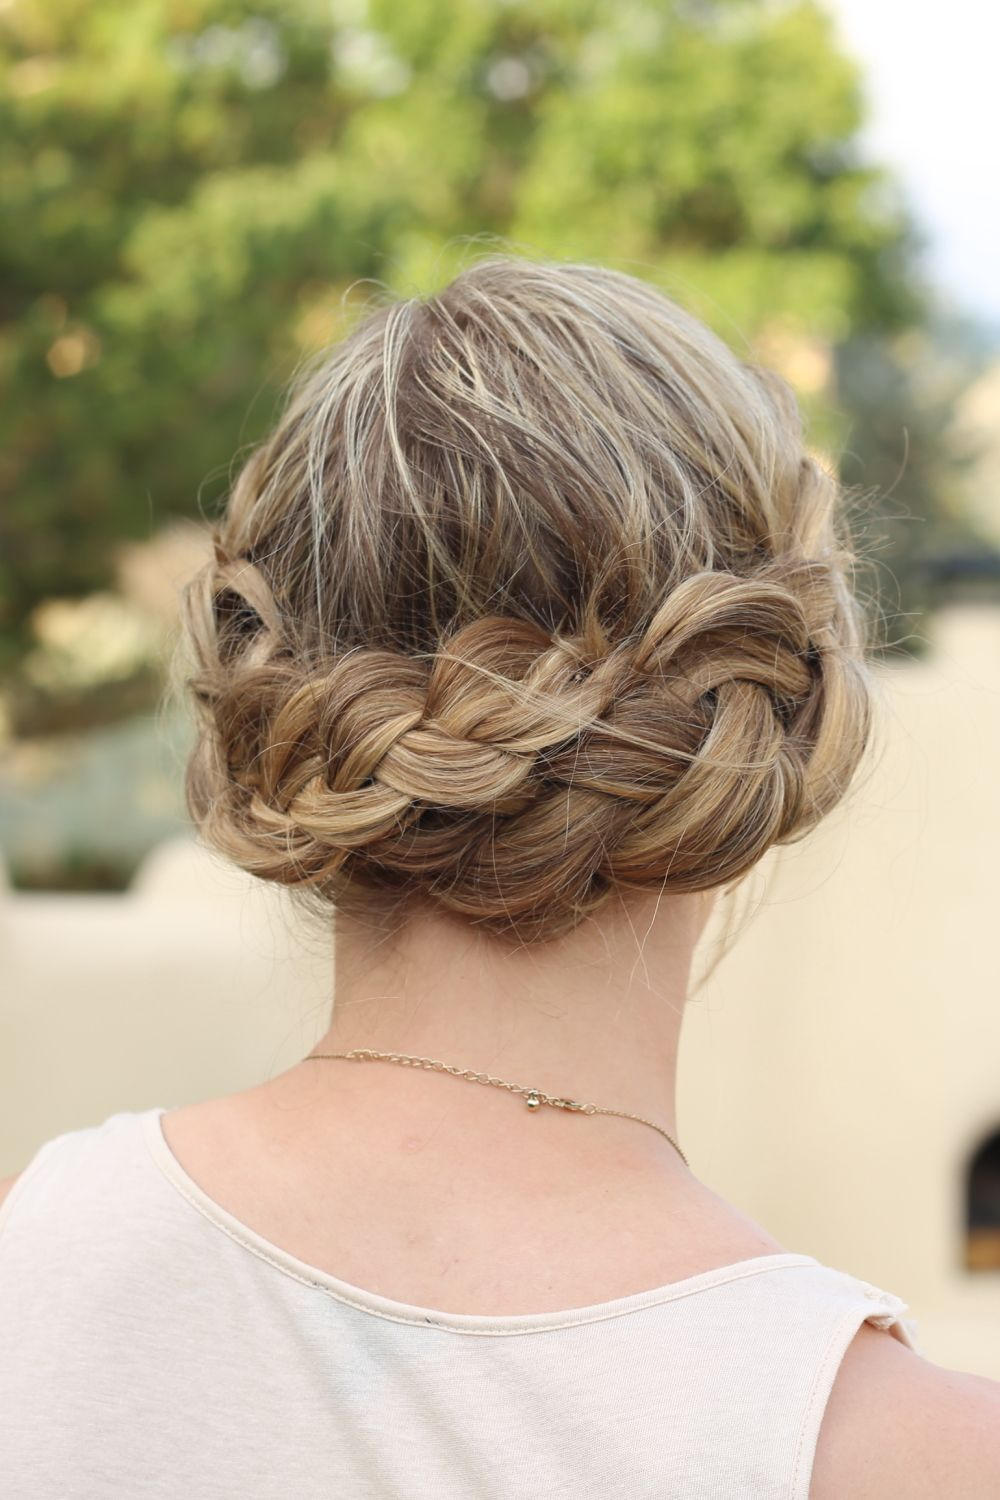 Braided crown hairstyle hair braid braids updo casual formal style